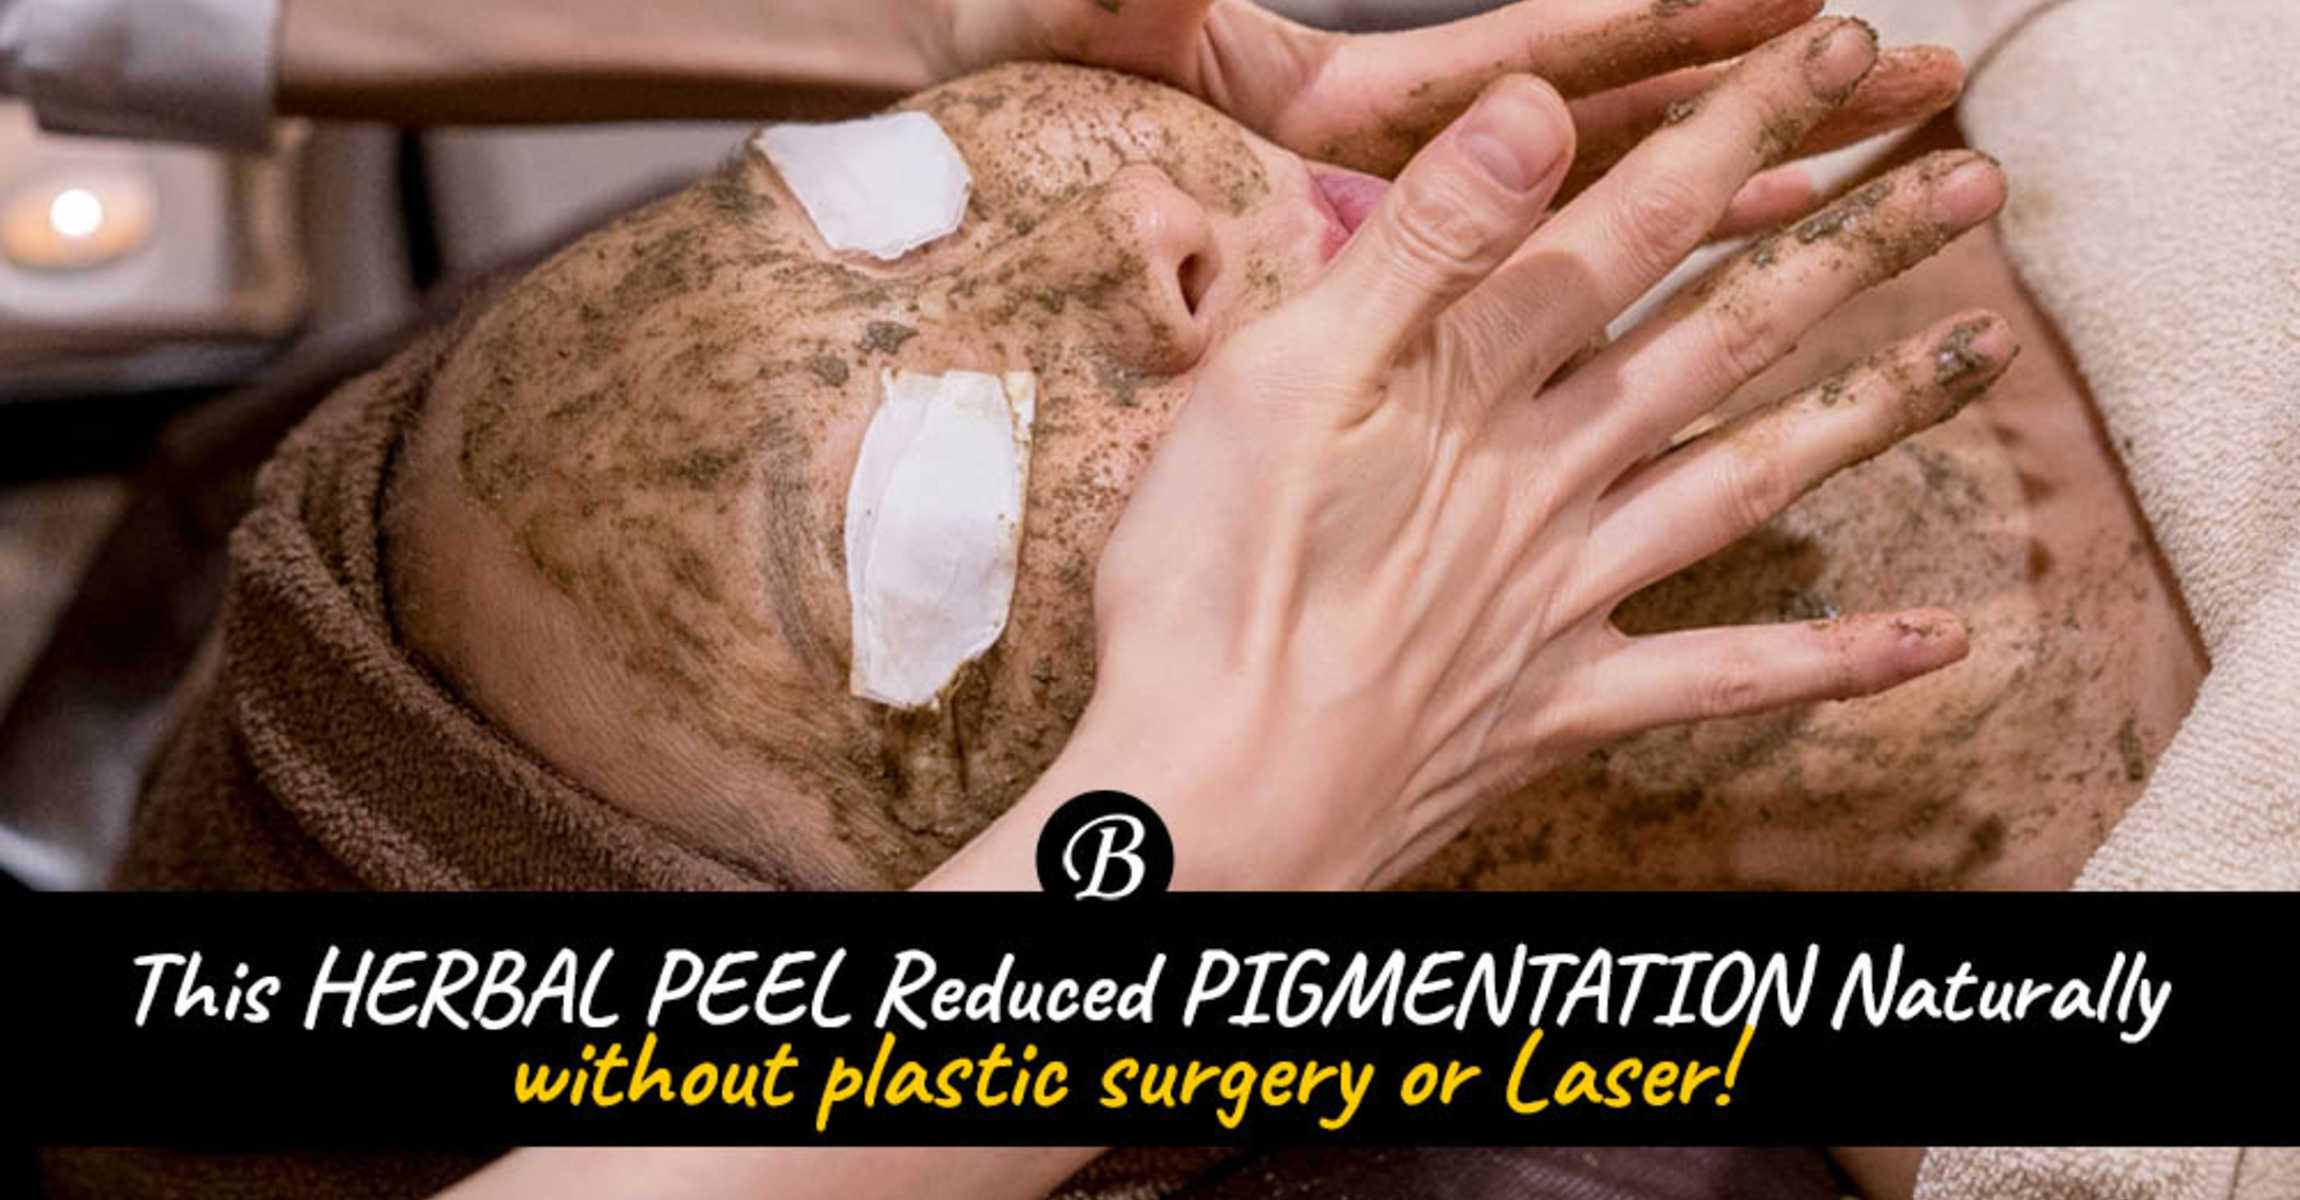 Say NO to Cosmetic Surgery! This Japanese lady lightened her aging pigmentation spots naturally with this Herbal Facial from Organics Beauty!